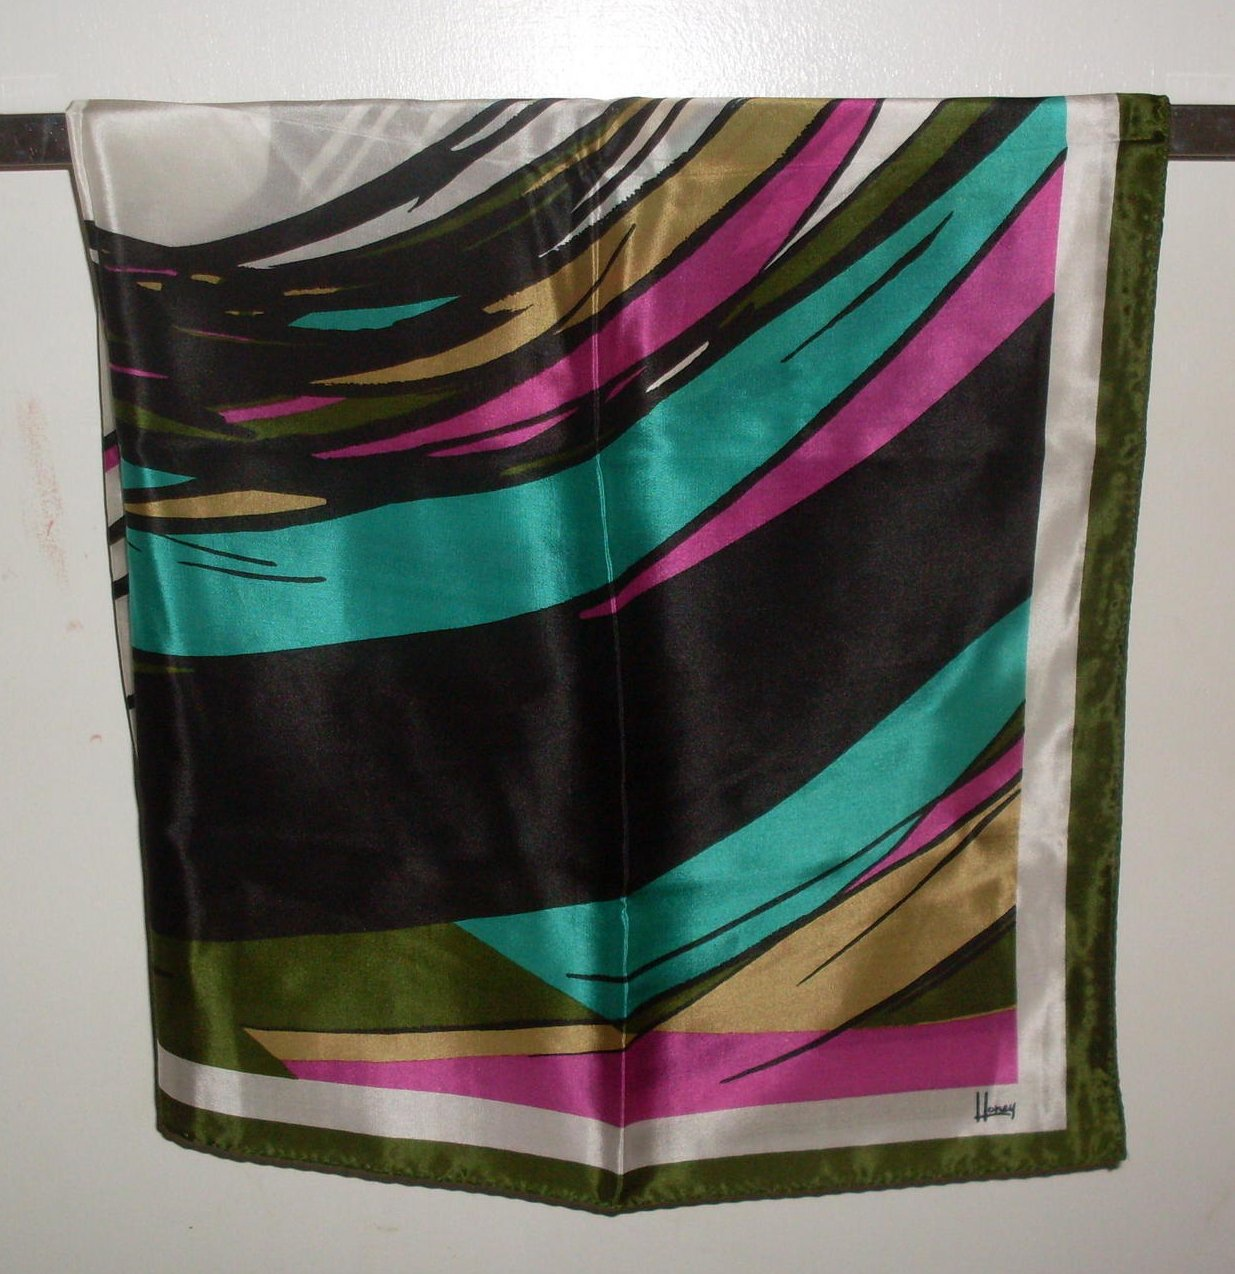 Image 1 of Scarf by Honey Dramatic Print Silk Black White Pink 32 Inch